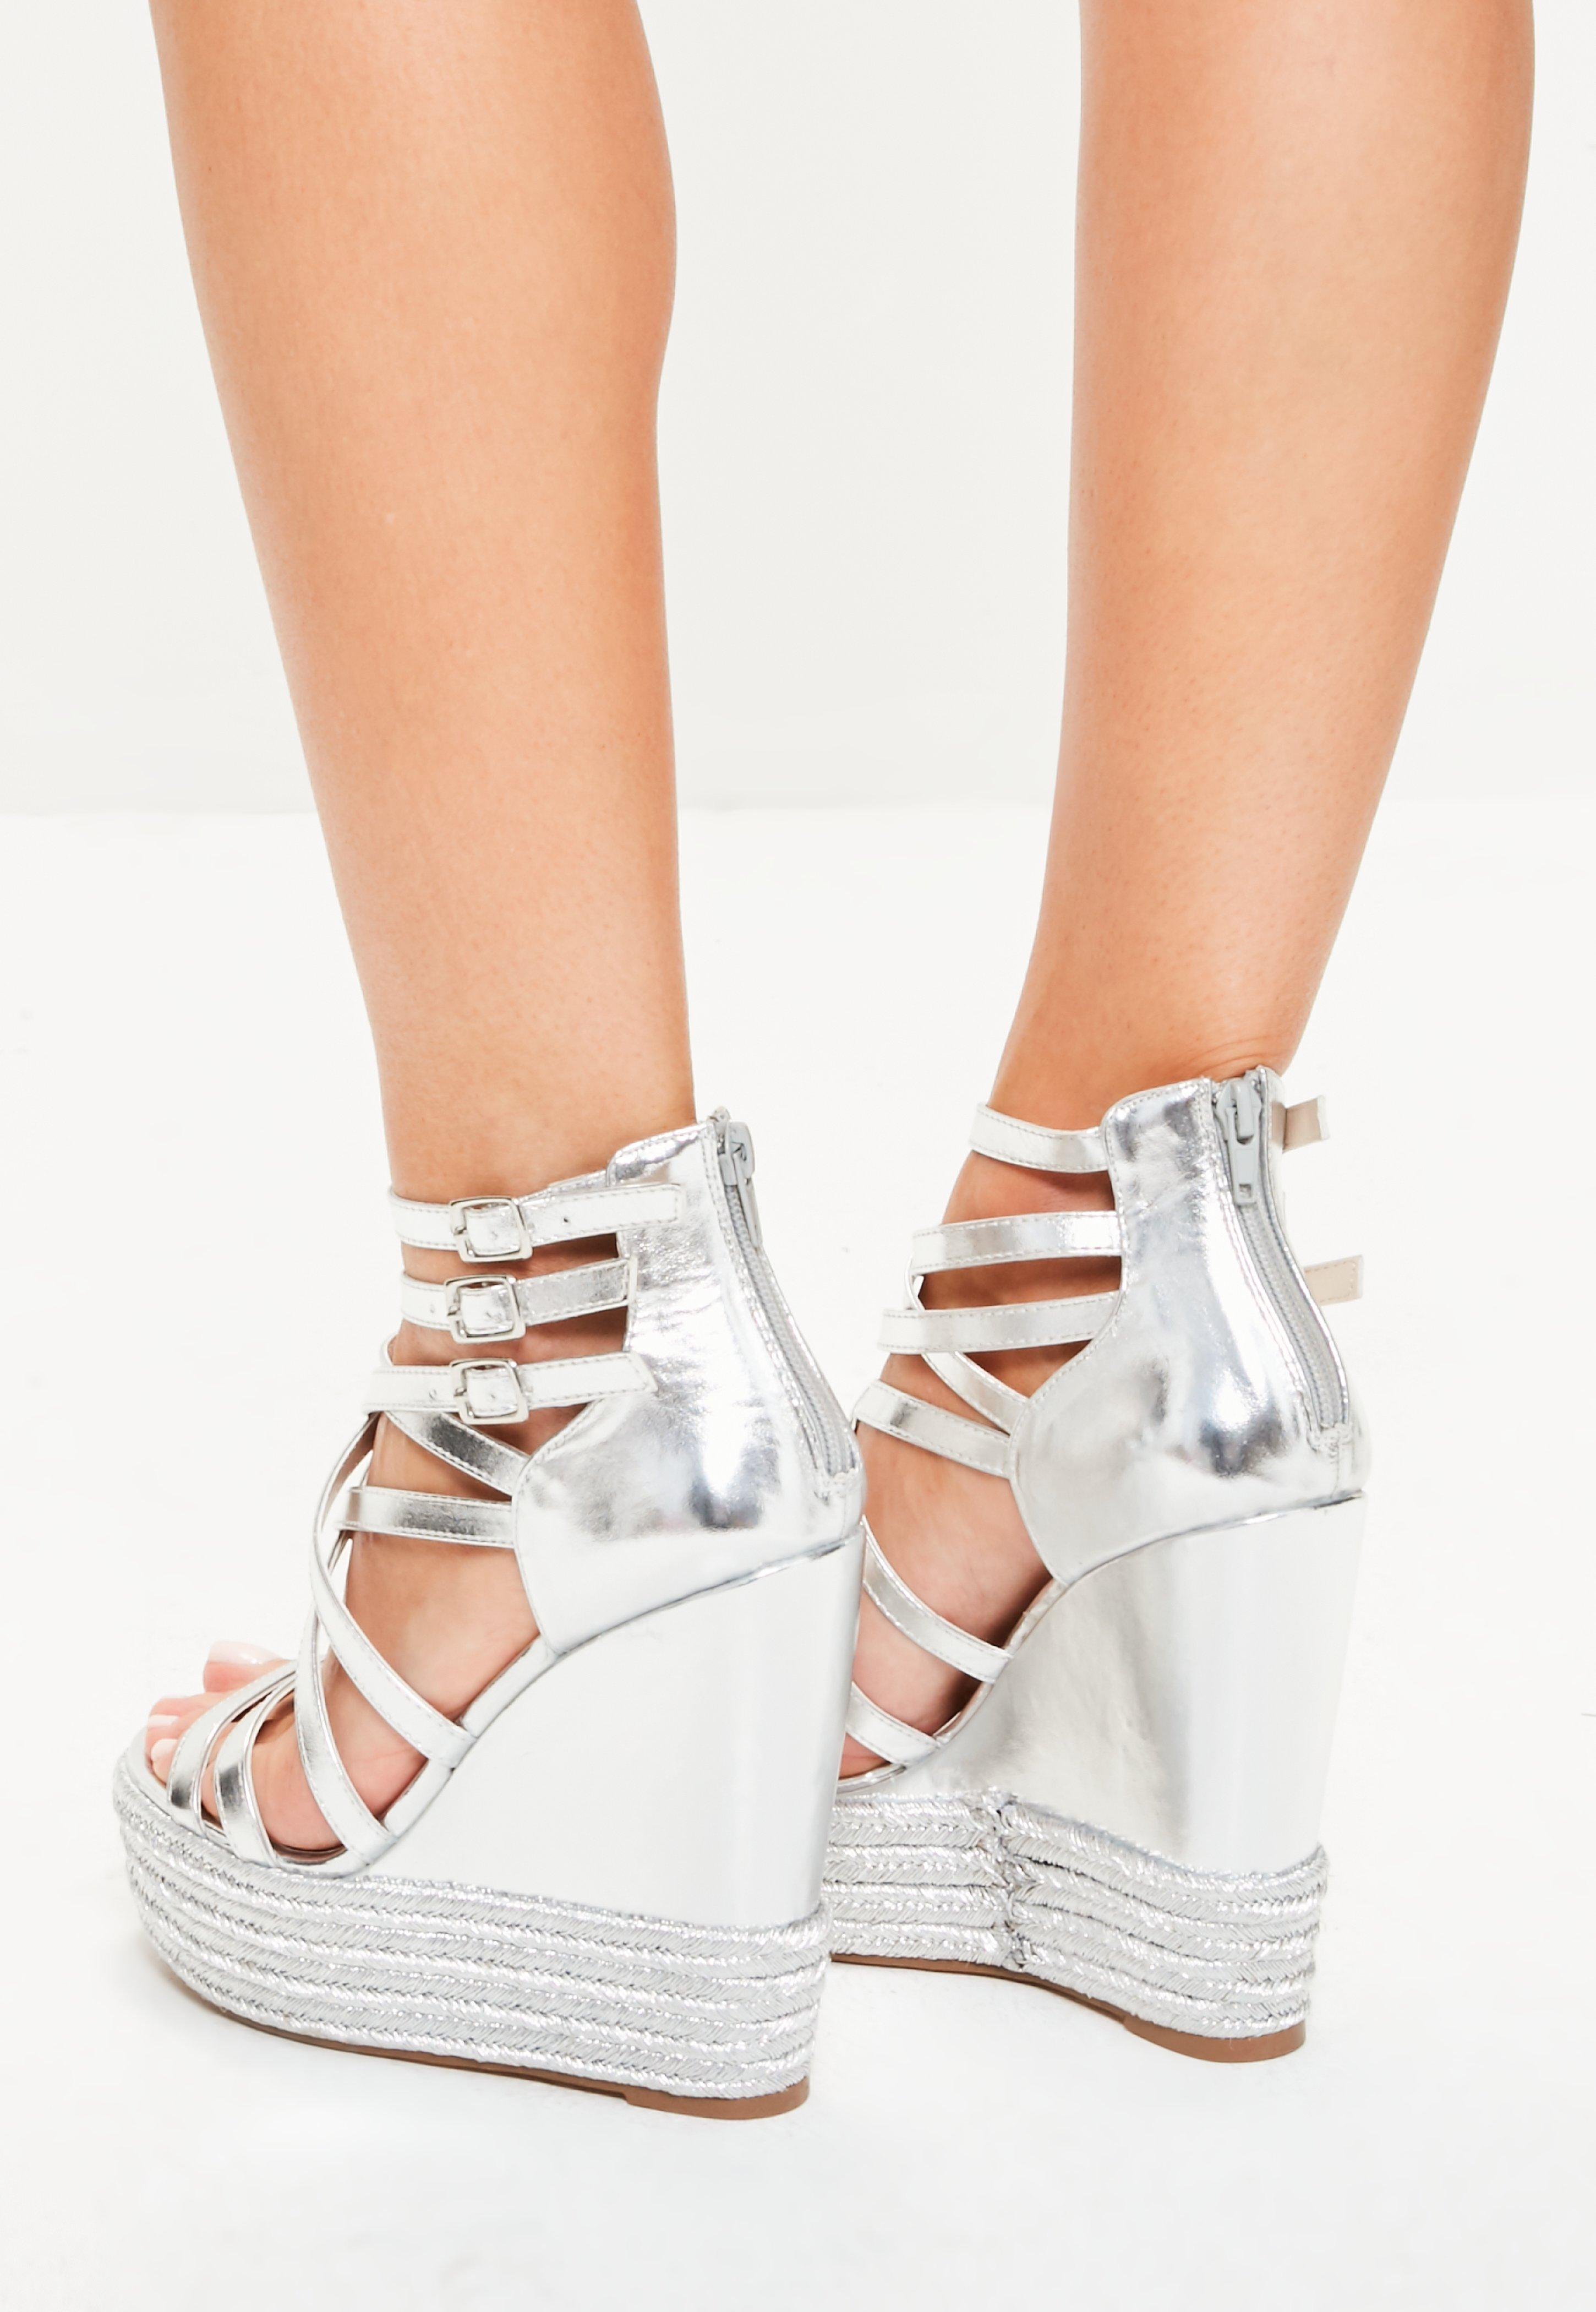 533b3e7f199 Lyst - Missguided Silver Metallic Platform Wedges in Metallic